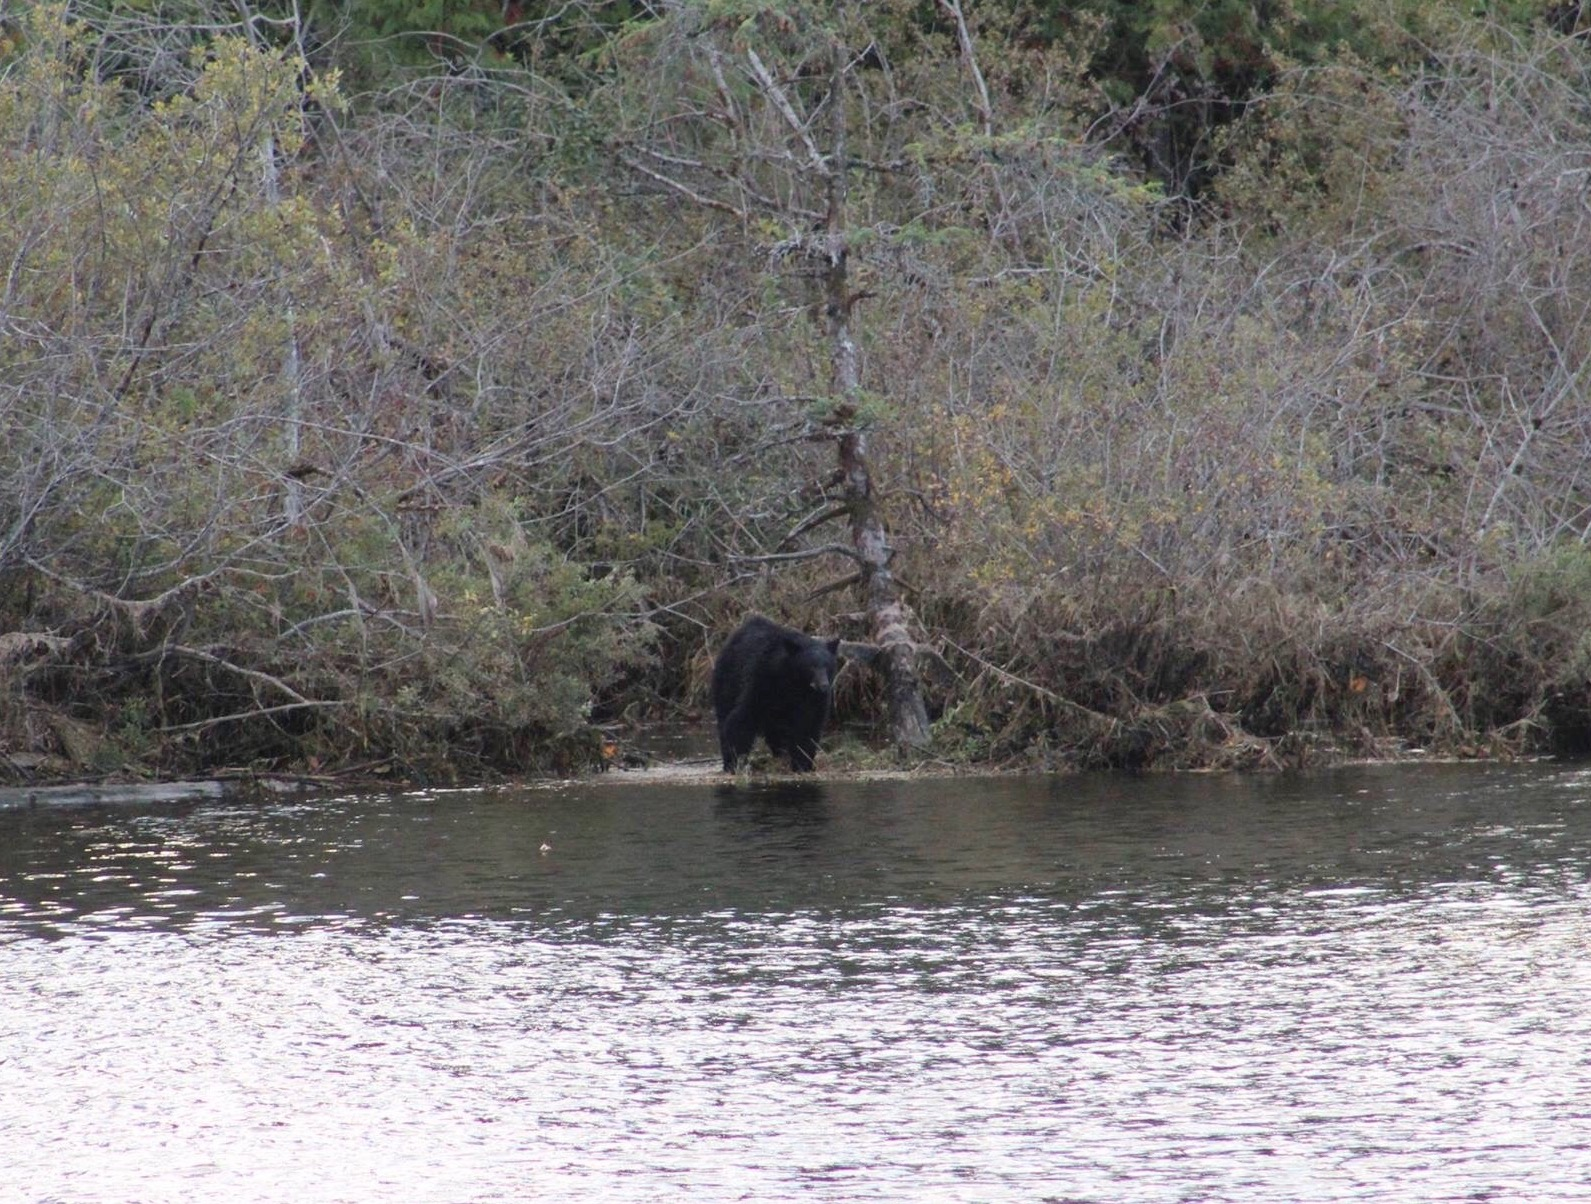 I saw bears - how amazing is that? // photo by Kaelin.